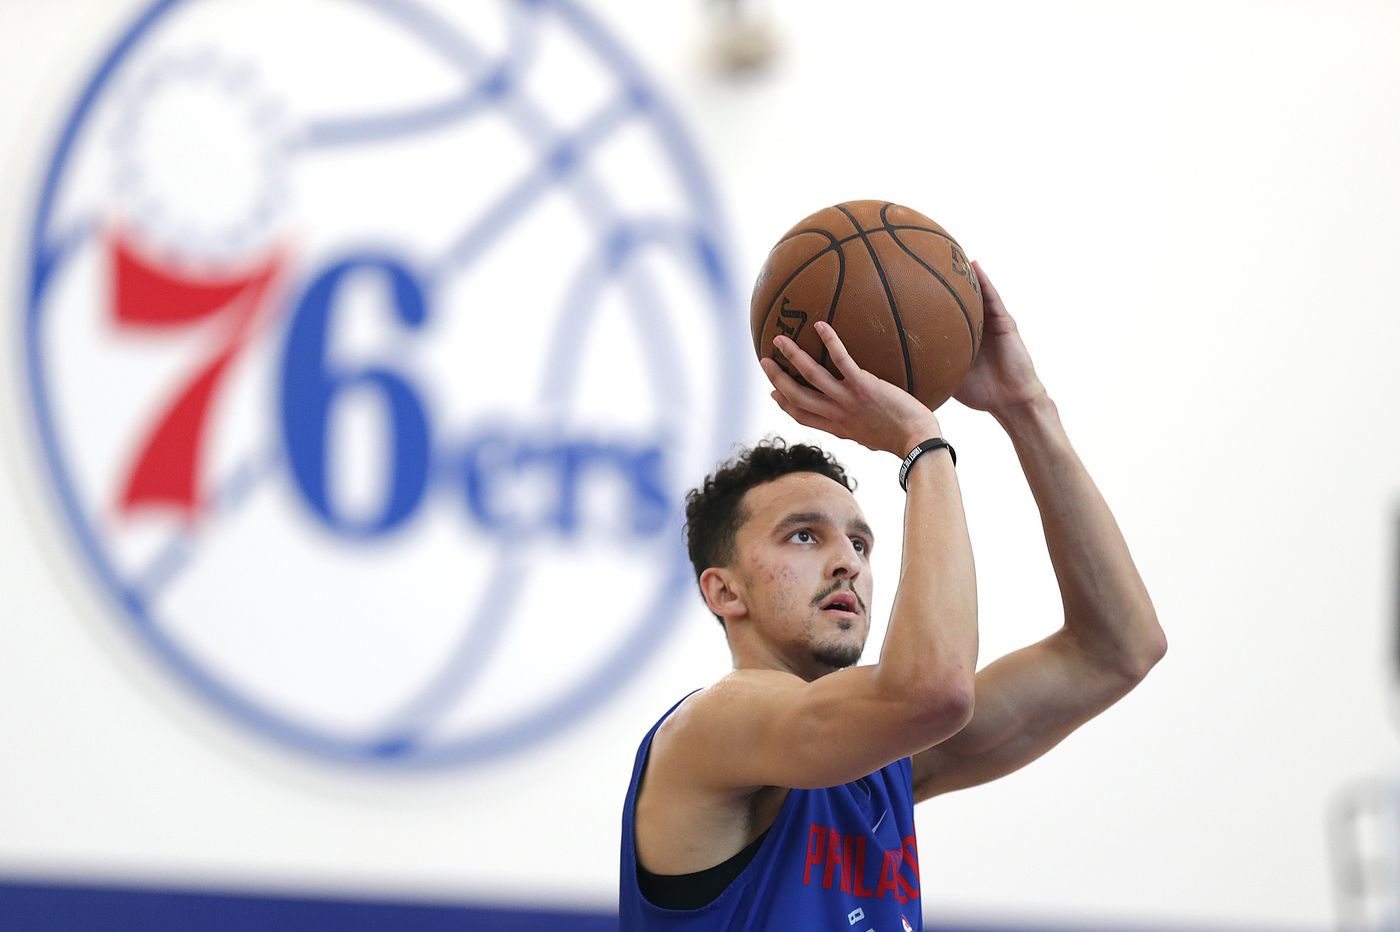 Sixers officially sign Landry Shamet to rookie contract